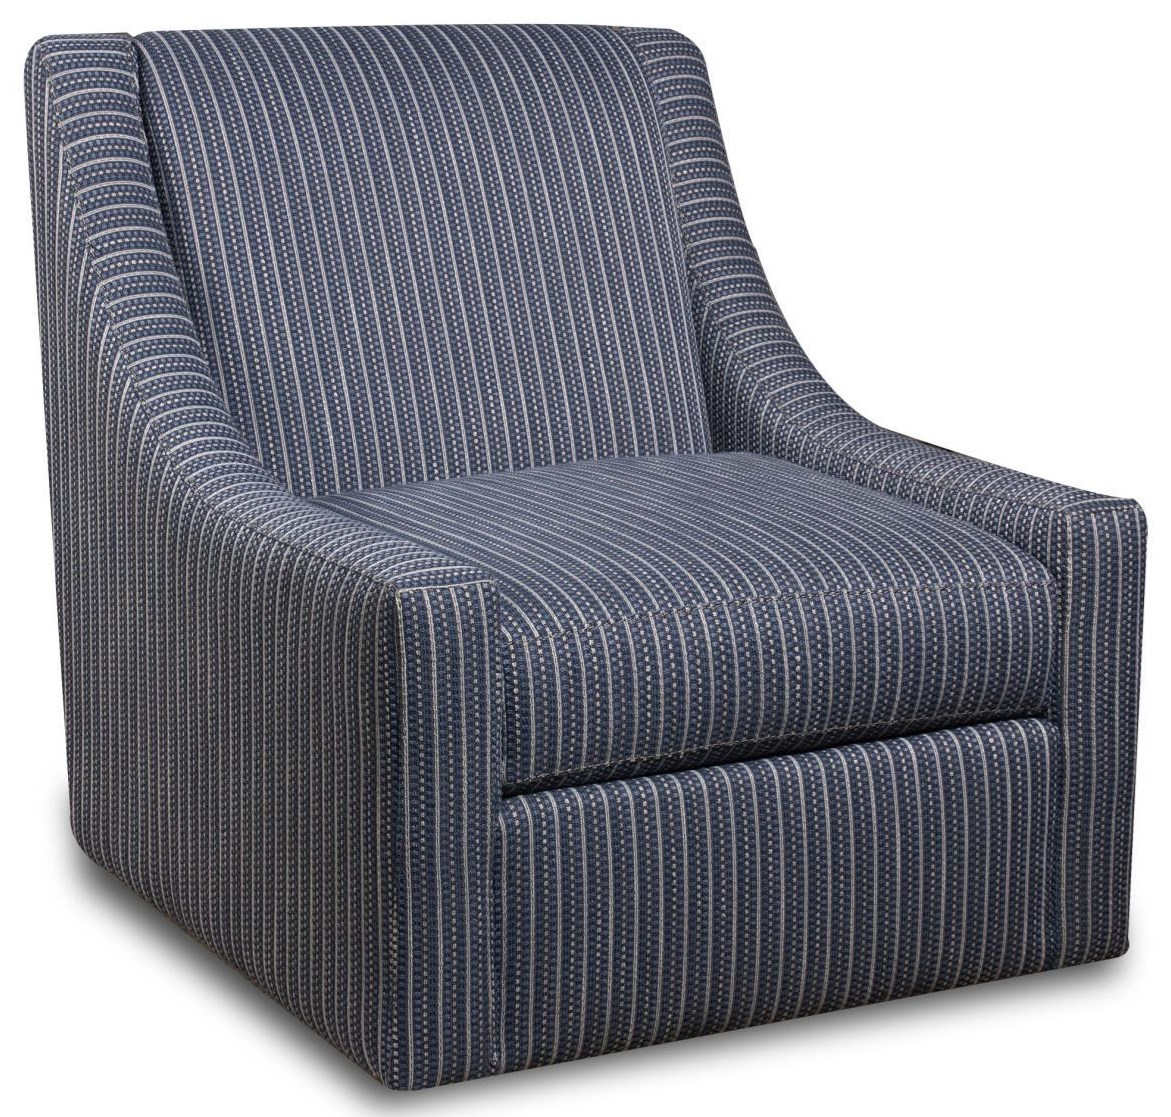 AZURE SWIVEL CHAIR by Washington Furniture at Household Furniture